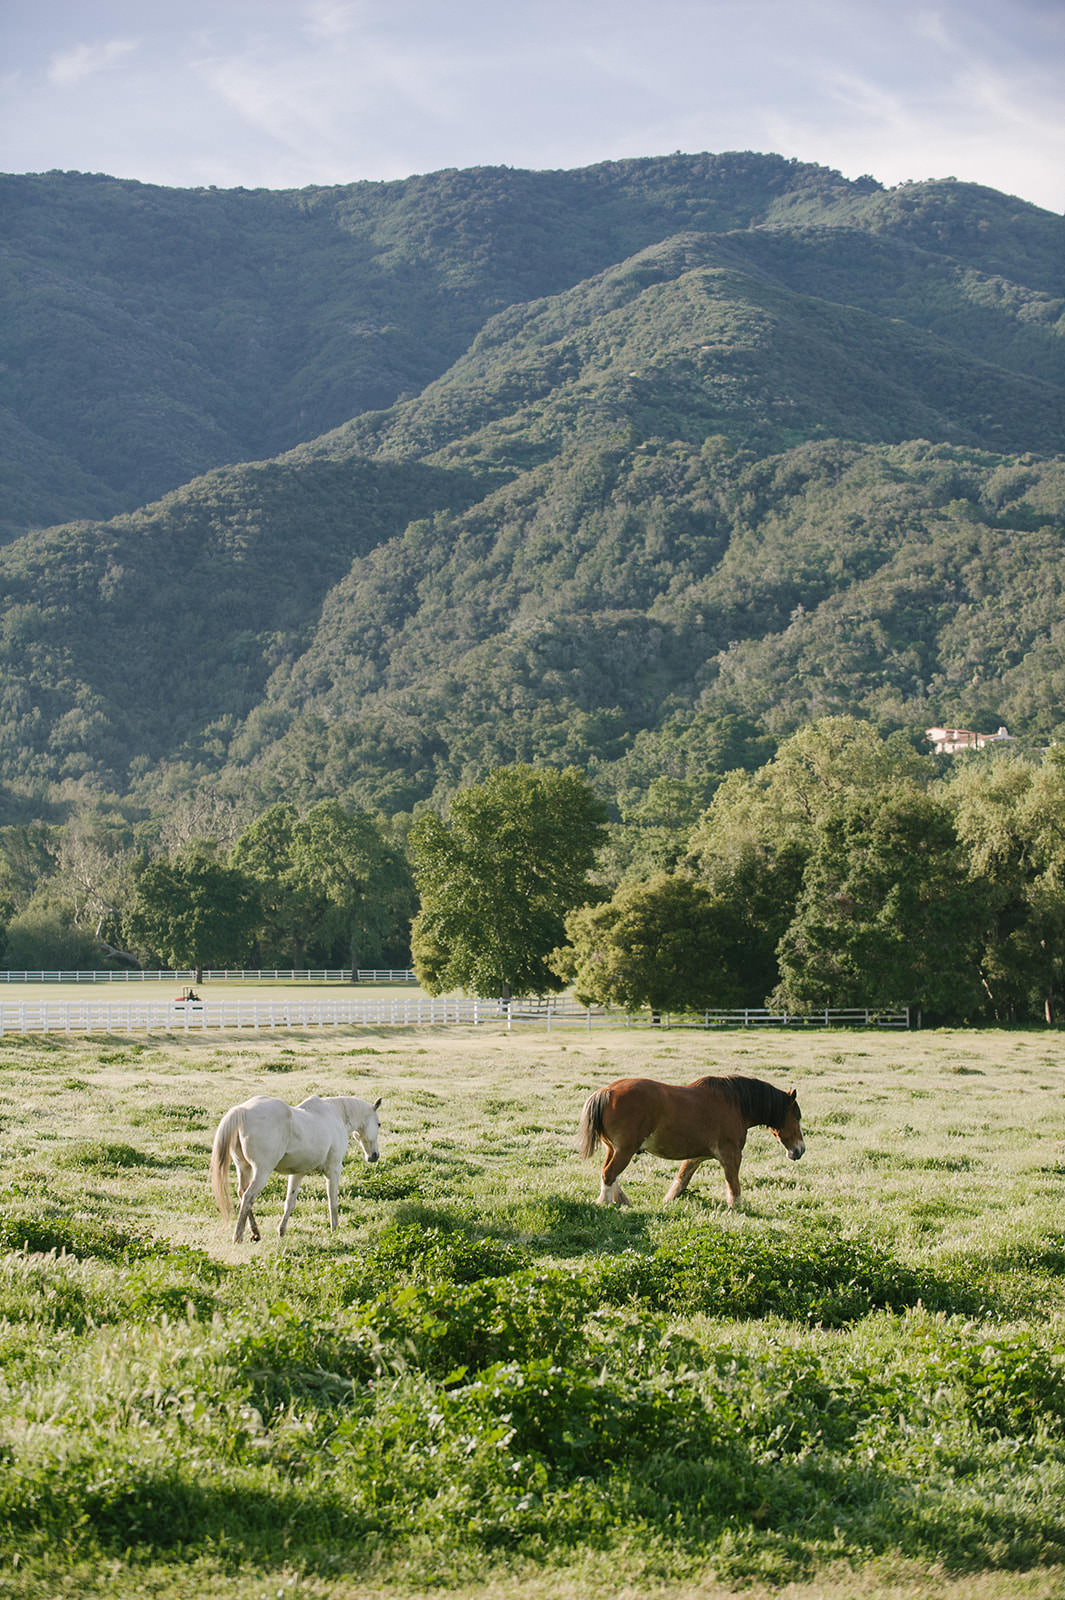 Gorgeous green field with horses in southern California rolling hills and white fence. Beautiful farm property!